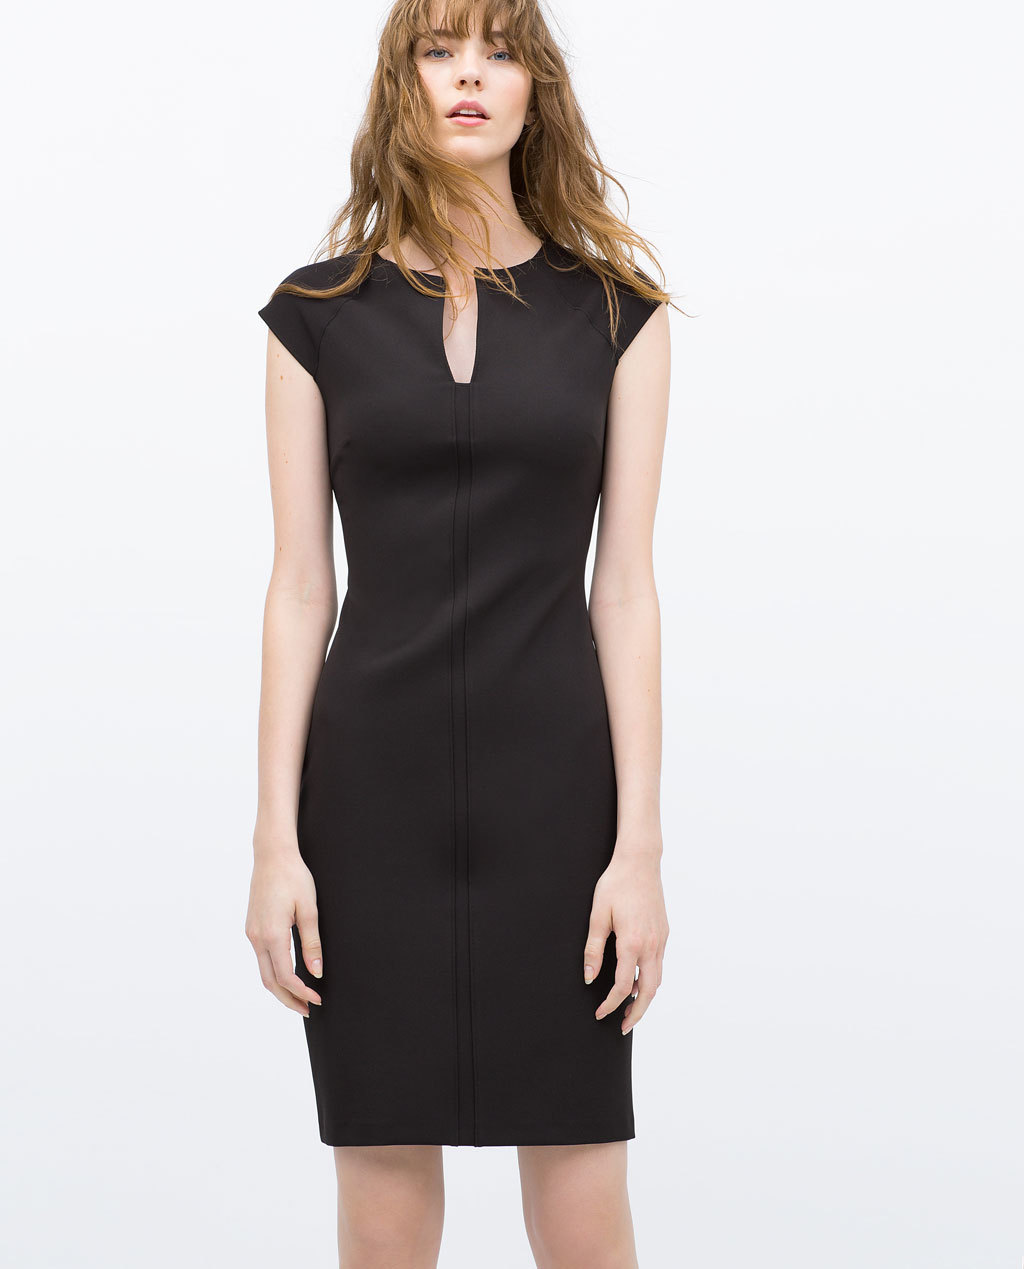 Tube Dress With Raglan Sleeves - style: shift; neckline: v-neck; sleeve style: capped; fit: tailored/fitted; pattern: plain; hip detail: fitted at hip; predominant colour: black; occasions: evening, work, occasion; length: just above the knee; fibres: polyester/polyamide - mix; sleeve length: short sleeve; pattern type: fabric; texture group: woven light midweight; season: s/s 2015; wardrobe: investment